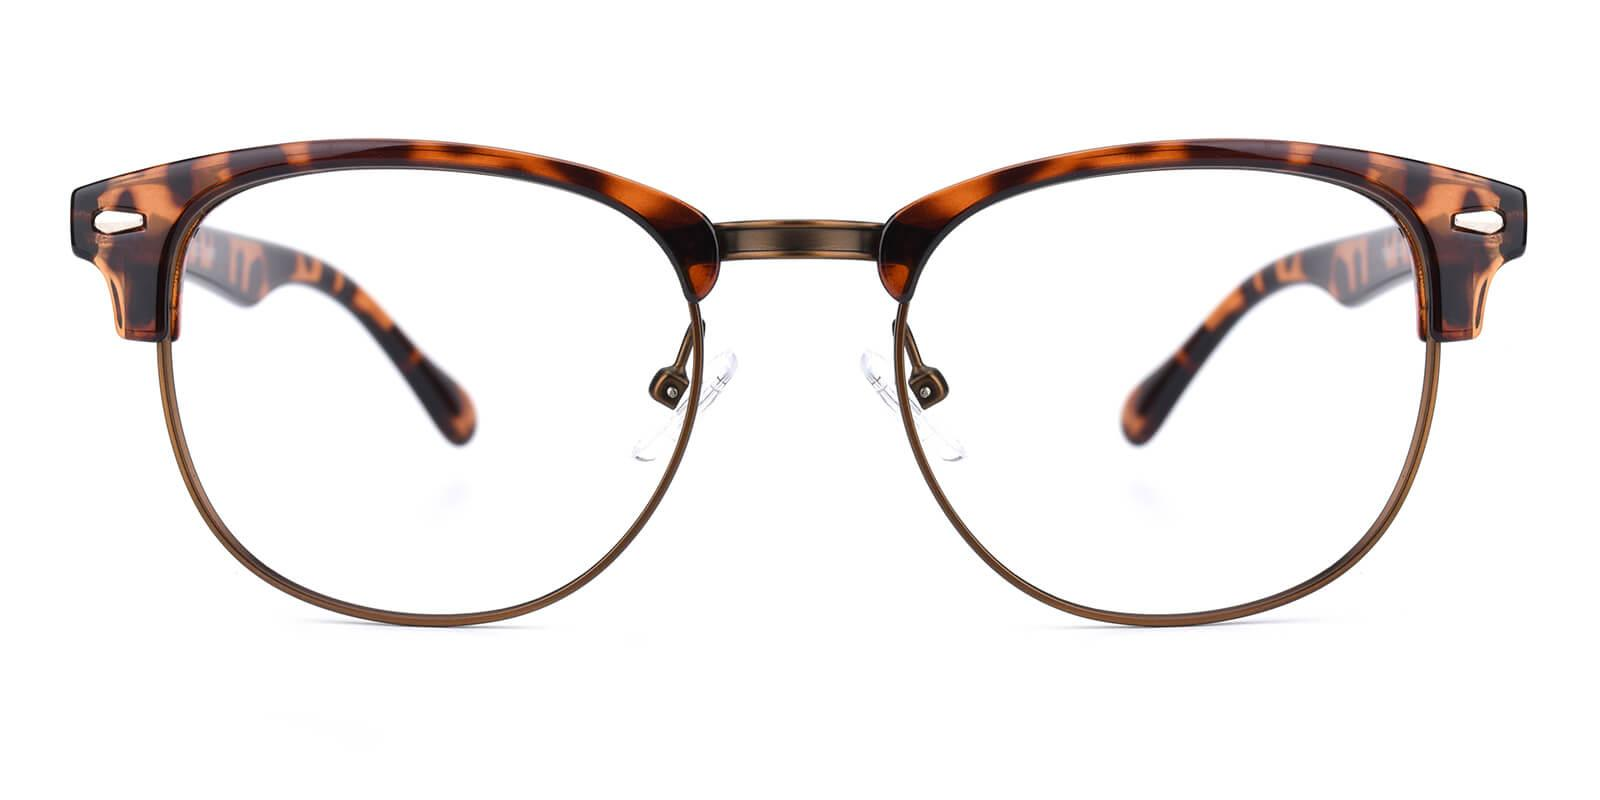 Ferrous-Leopard-Browline-Metal / Combination / Plastic-Eyeglasses-additional2